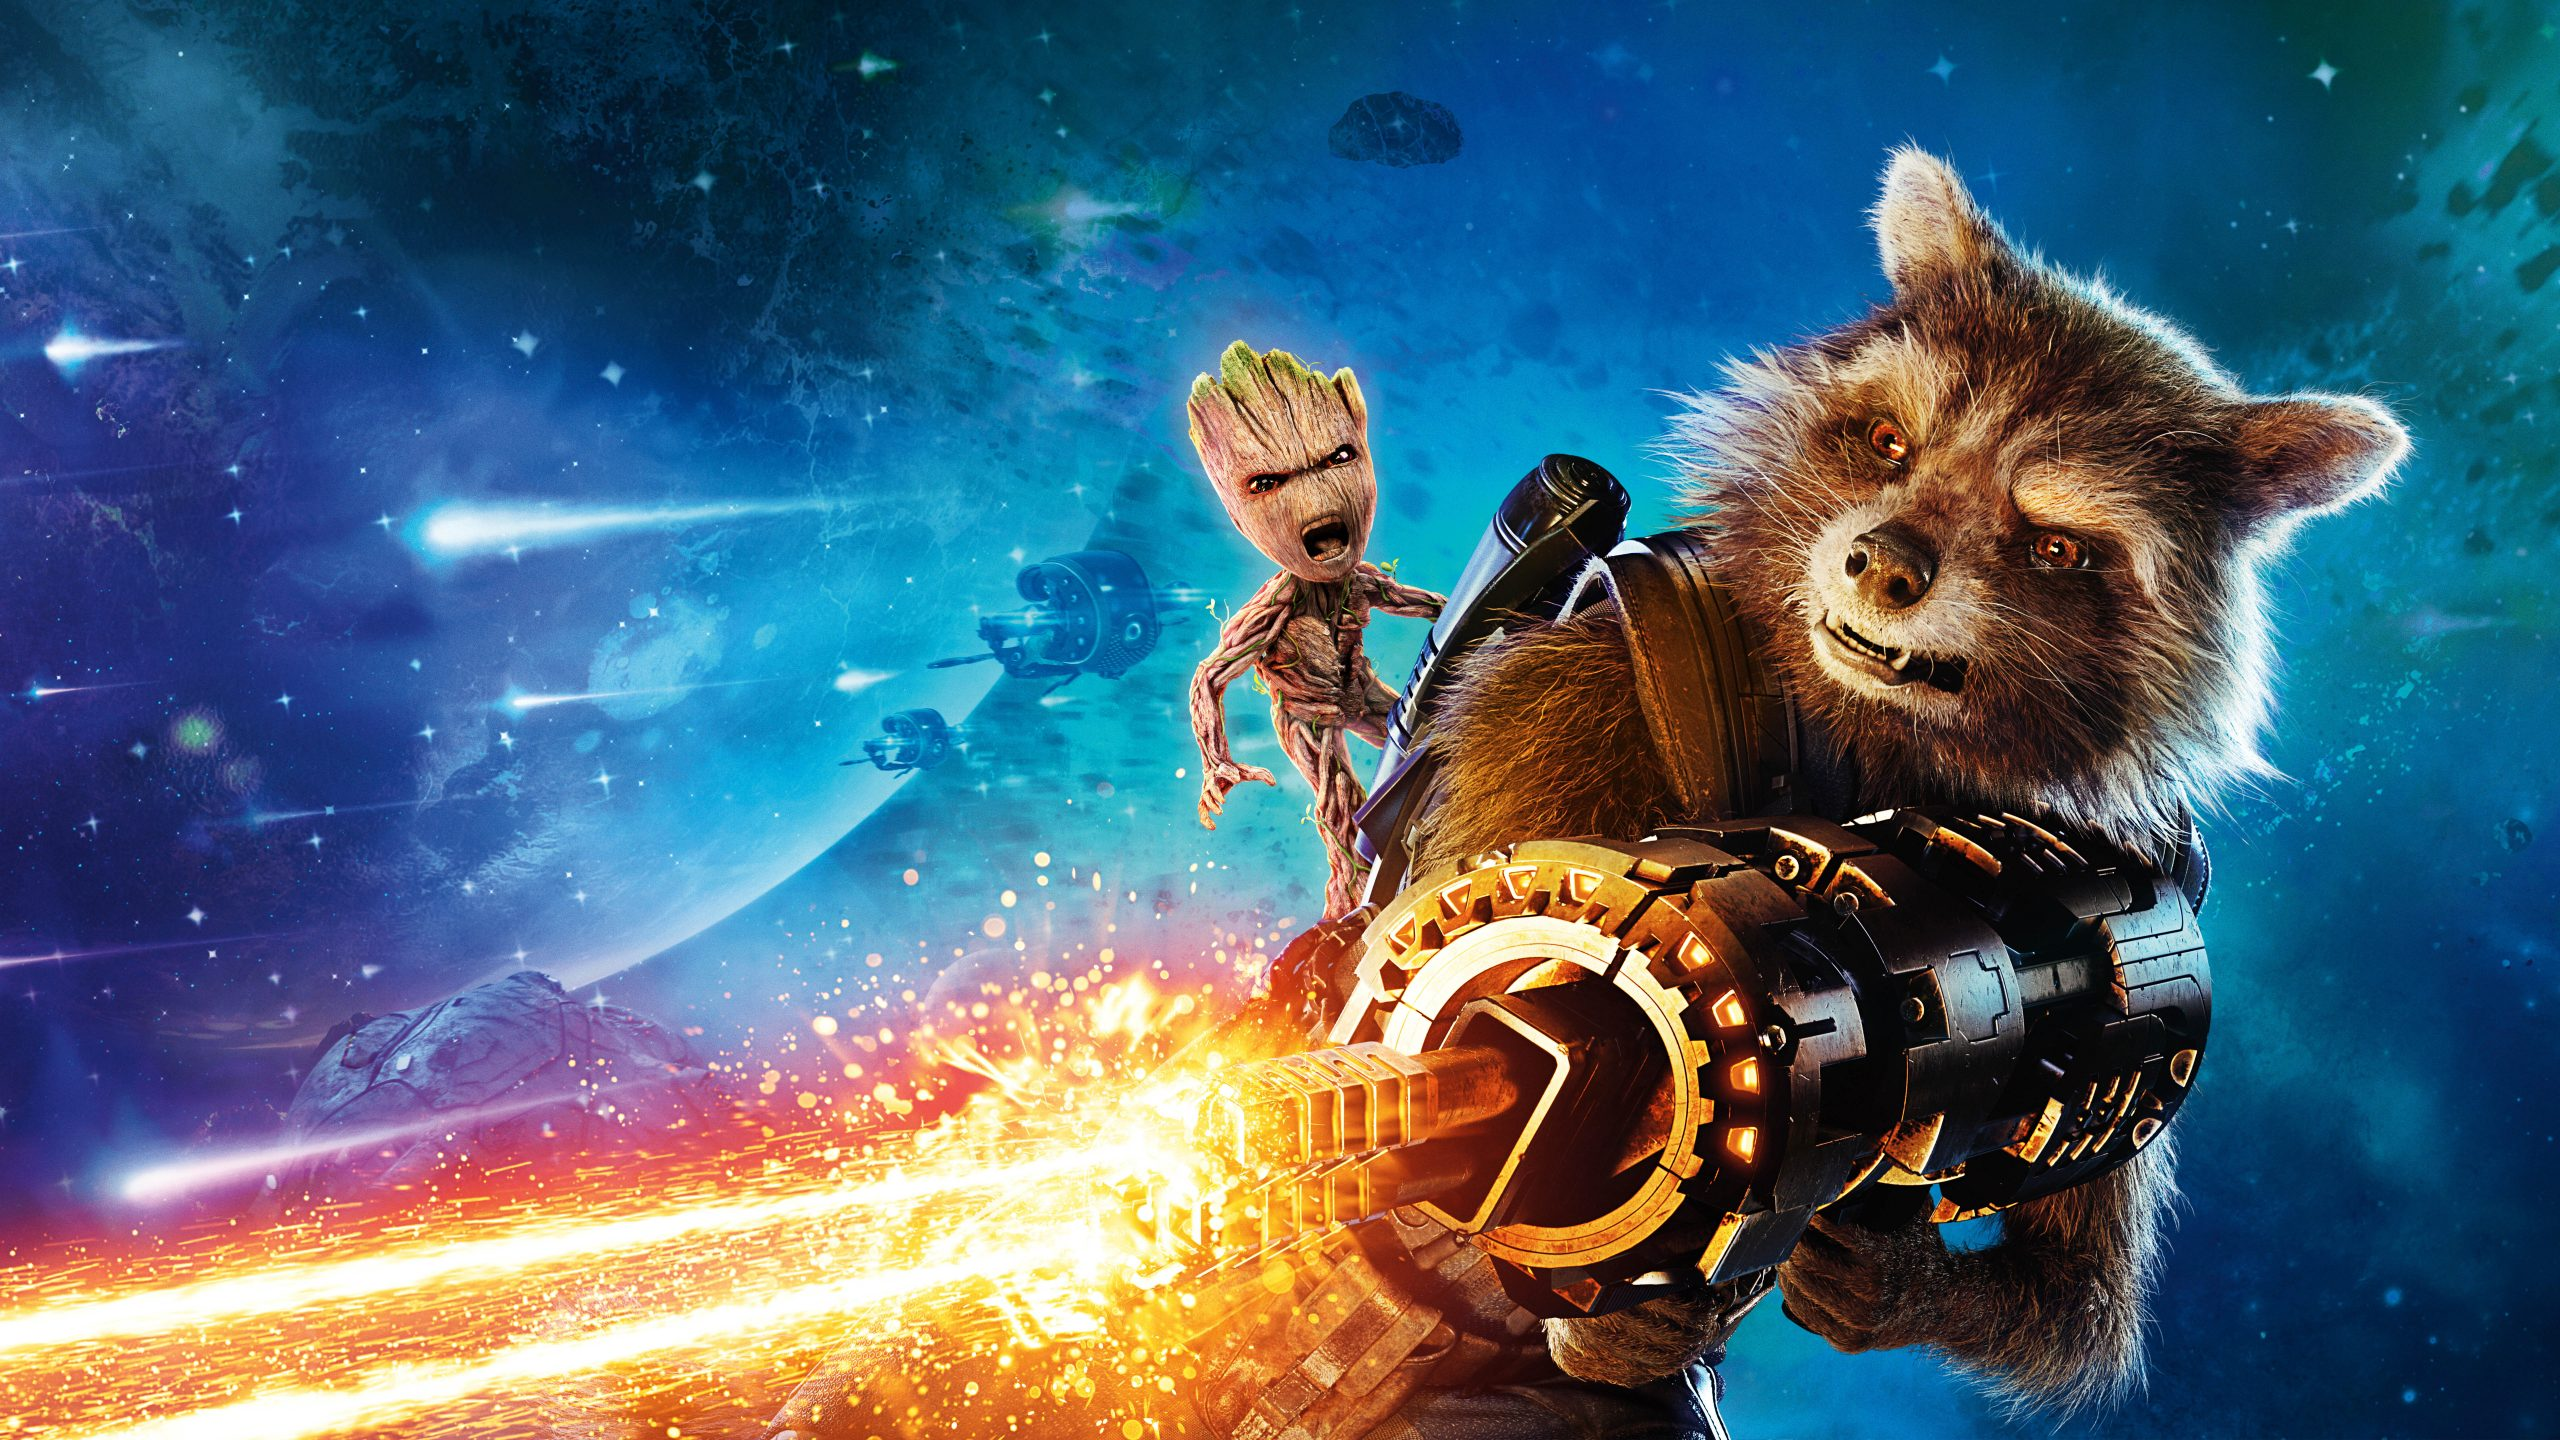 Groot Rocket Raccoon Guardians Of The Galaxy Vol 2 8k Wallpaper